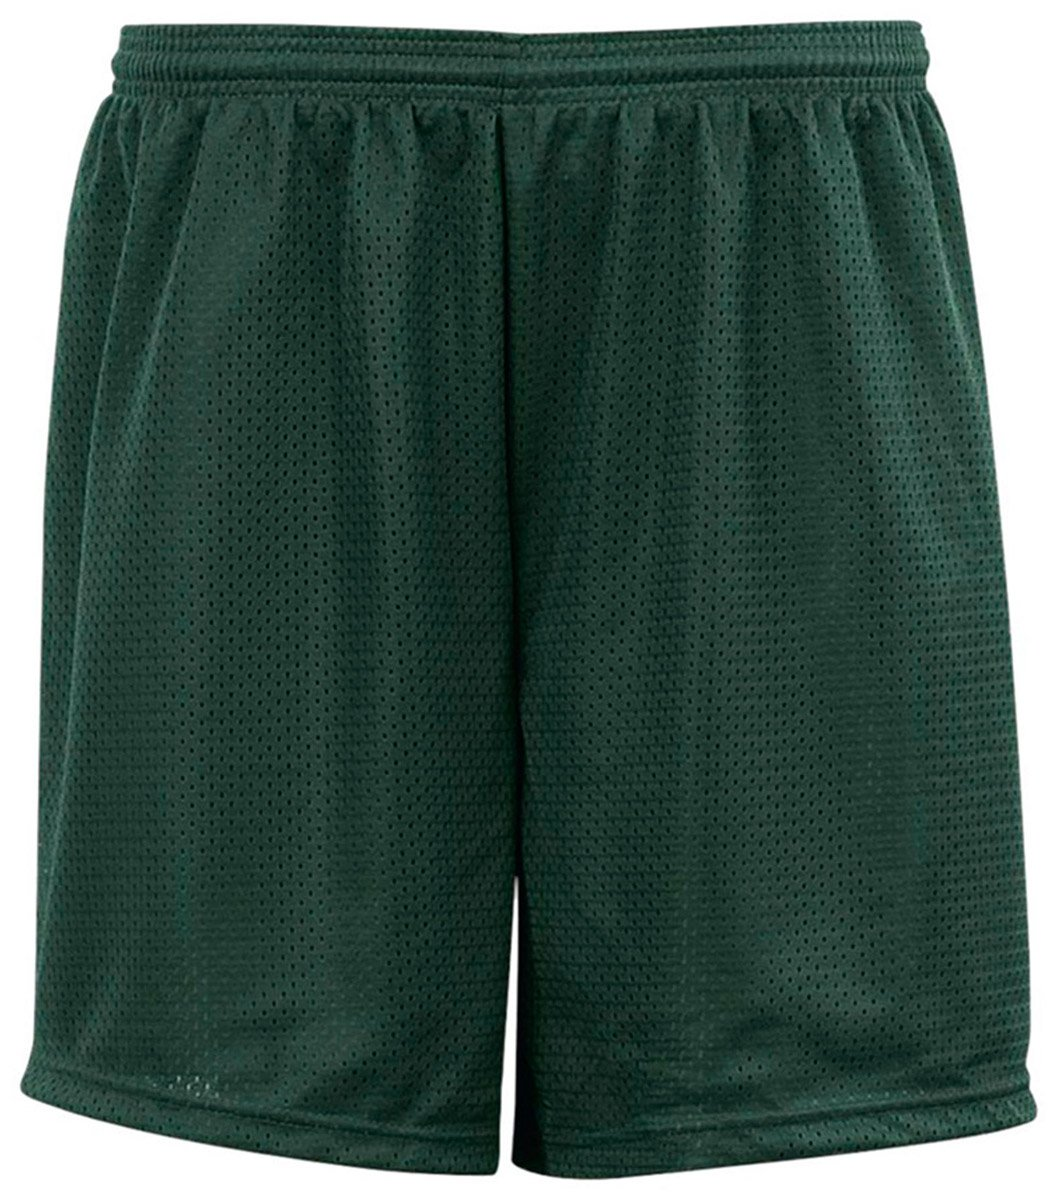 Unisex Child C2 5209 Sport Big Kids Youth Mesh 6'' Short Forest Green Small by C2 Sport